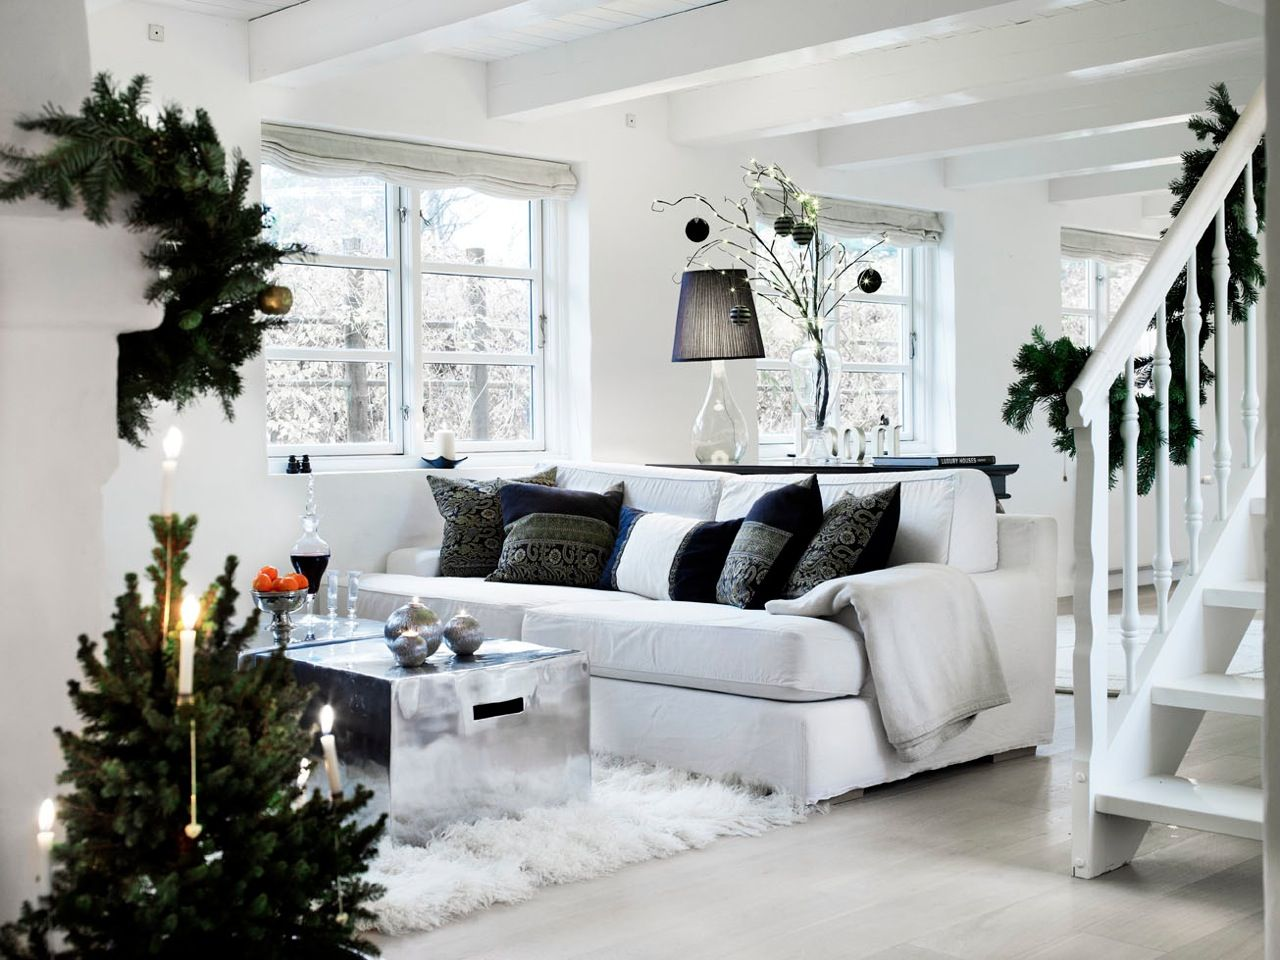 73 Beautiful Examples Of Scandinavian-Style Christmas Decorations ...